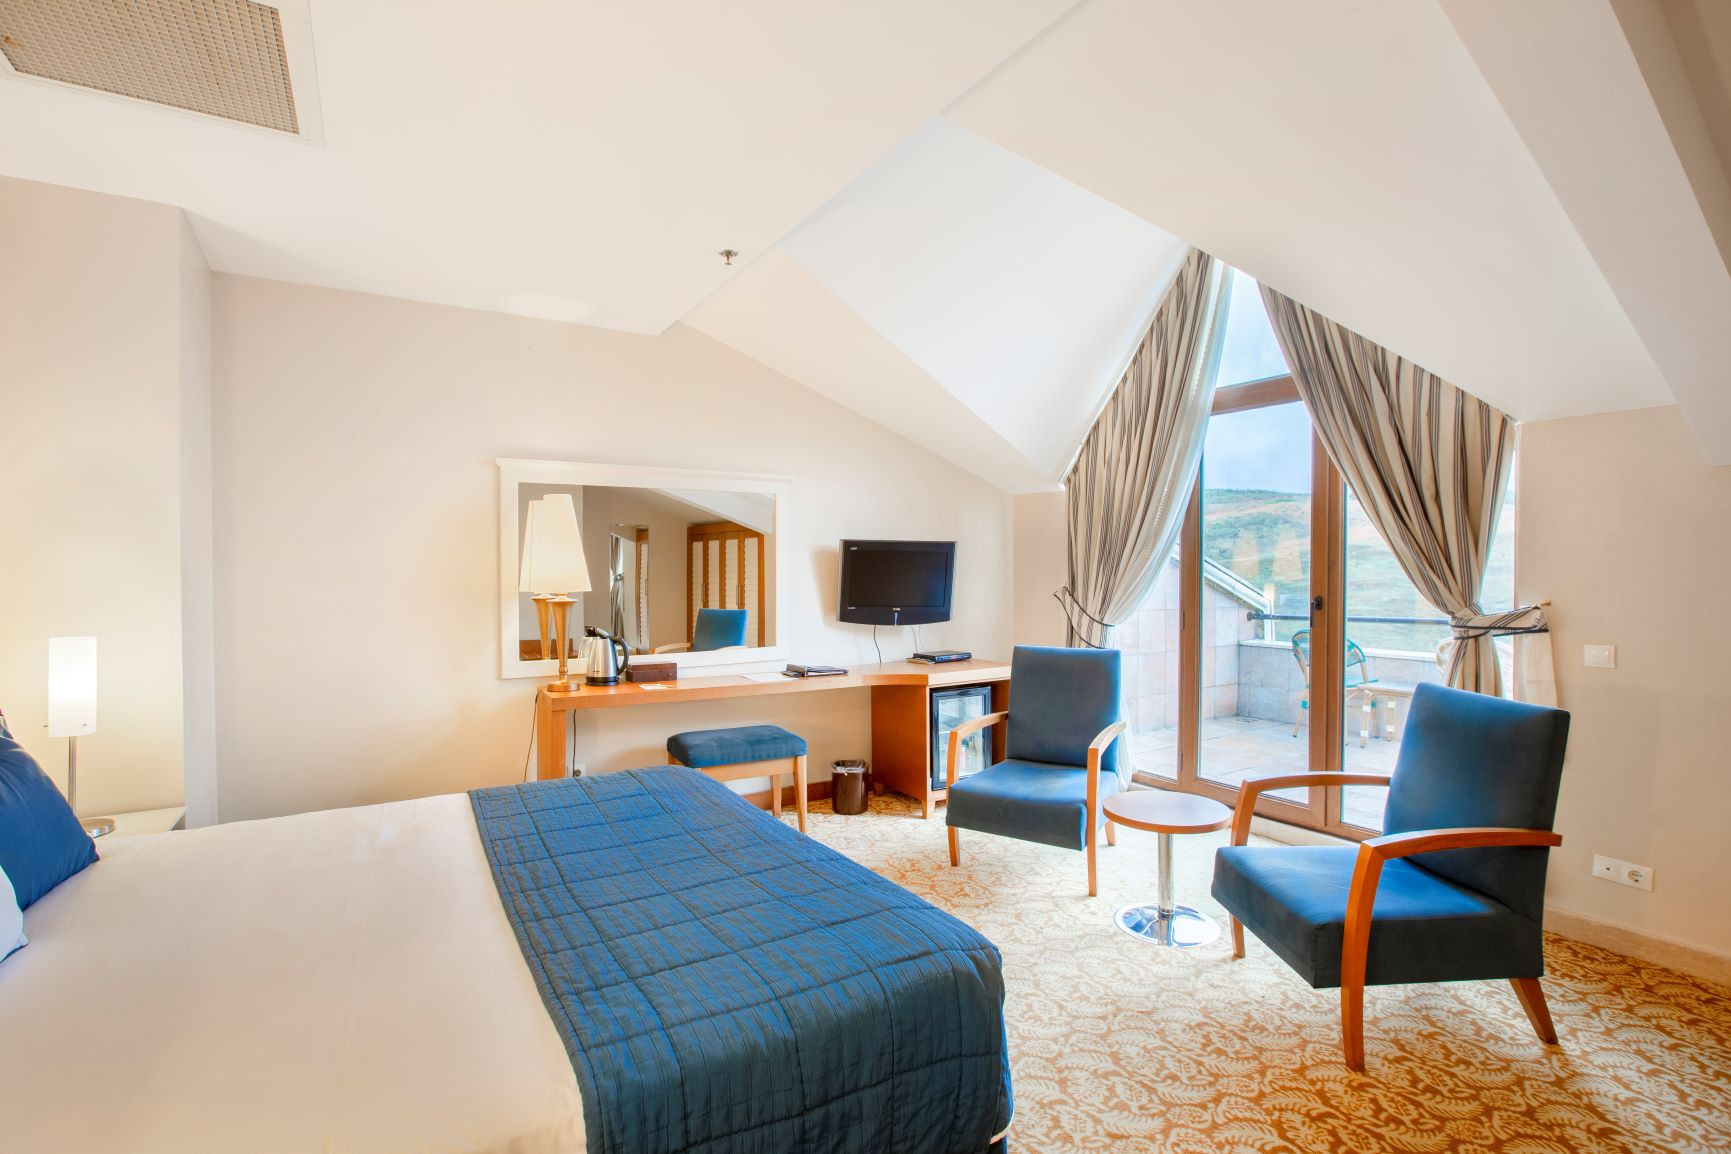 RO Chalet Room